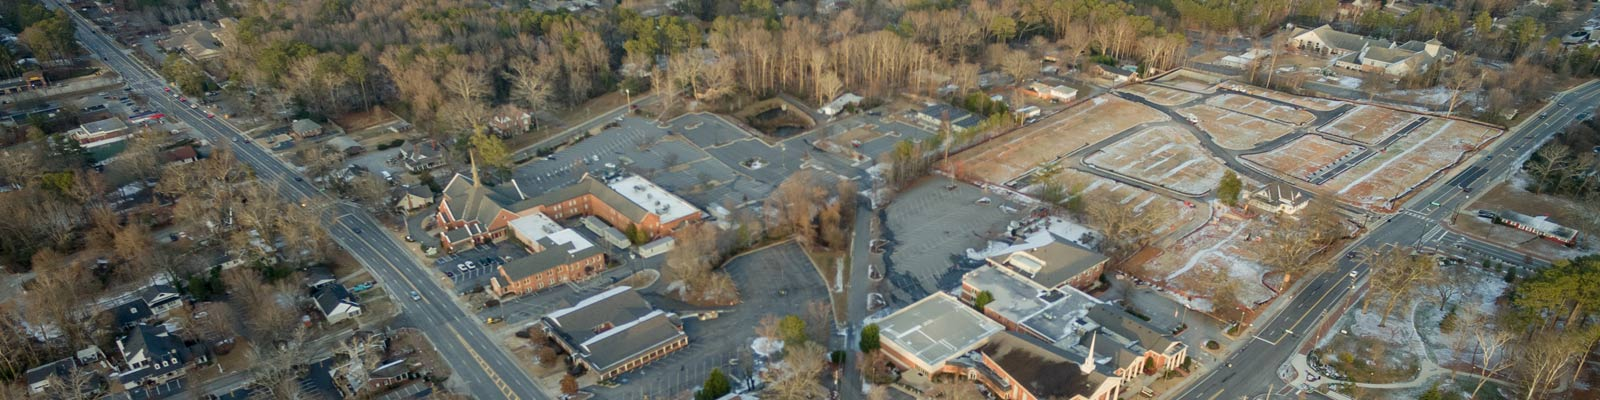 This is an aerial view of Alpharetta where ASTA-USA provides professional translation services.